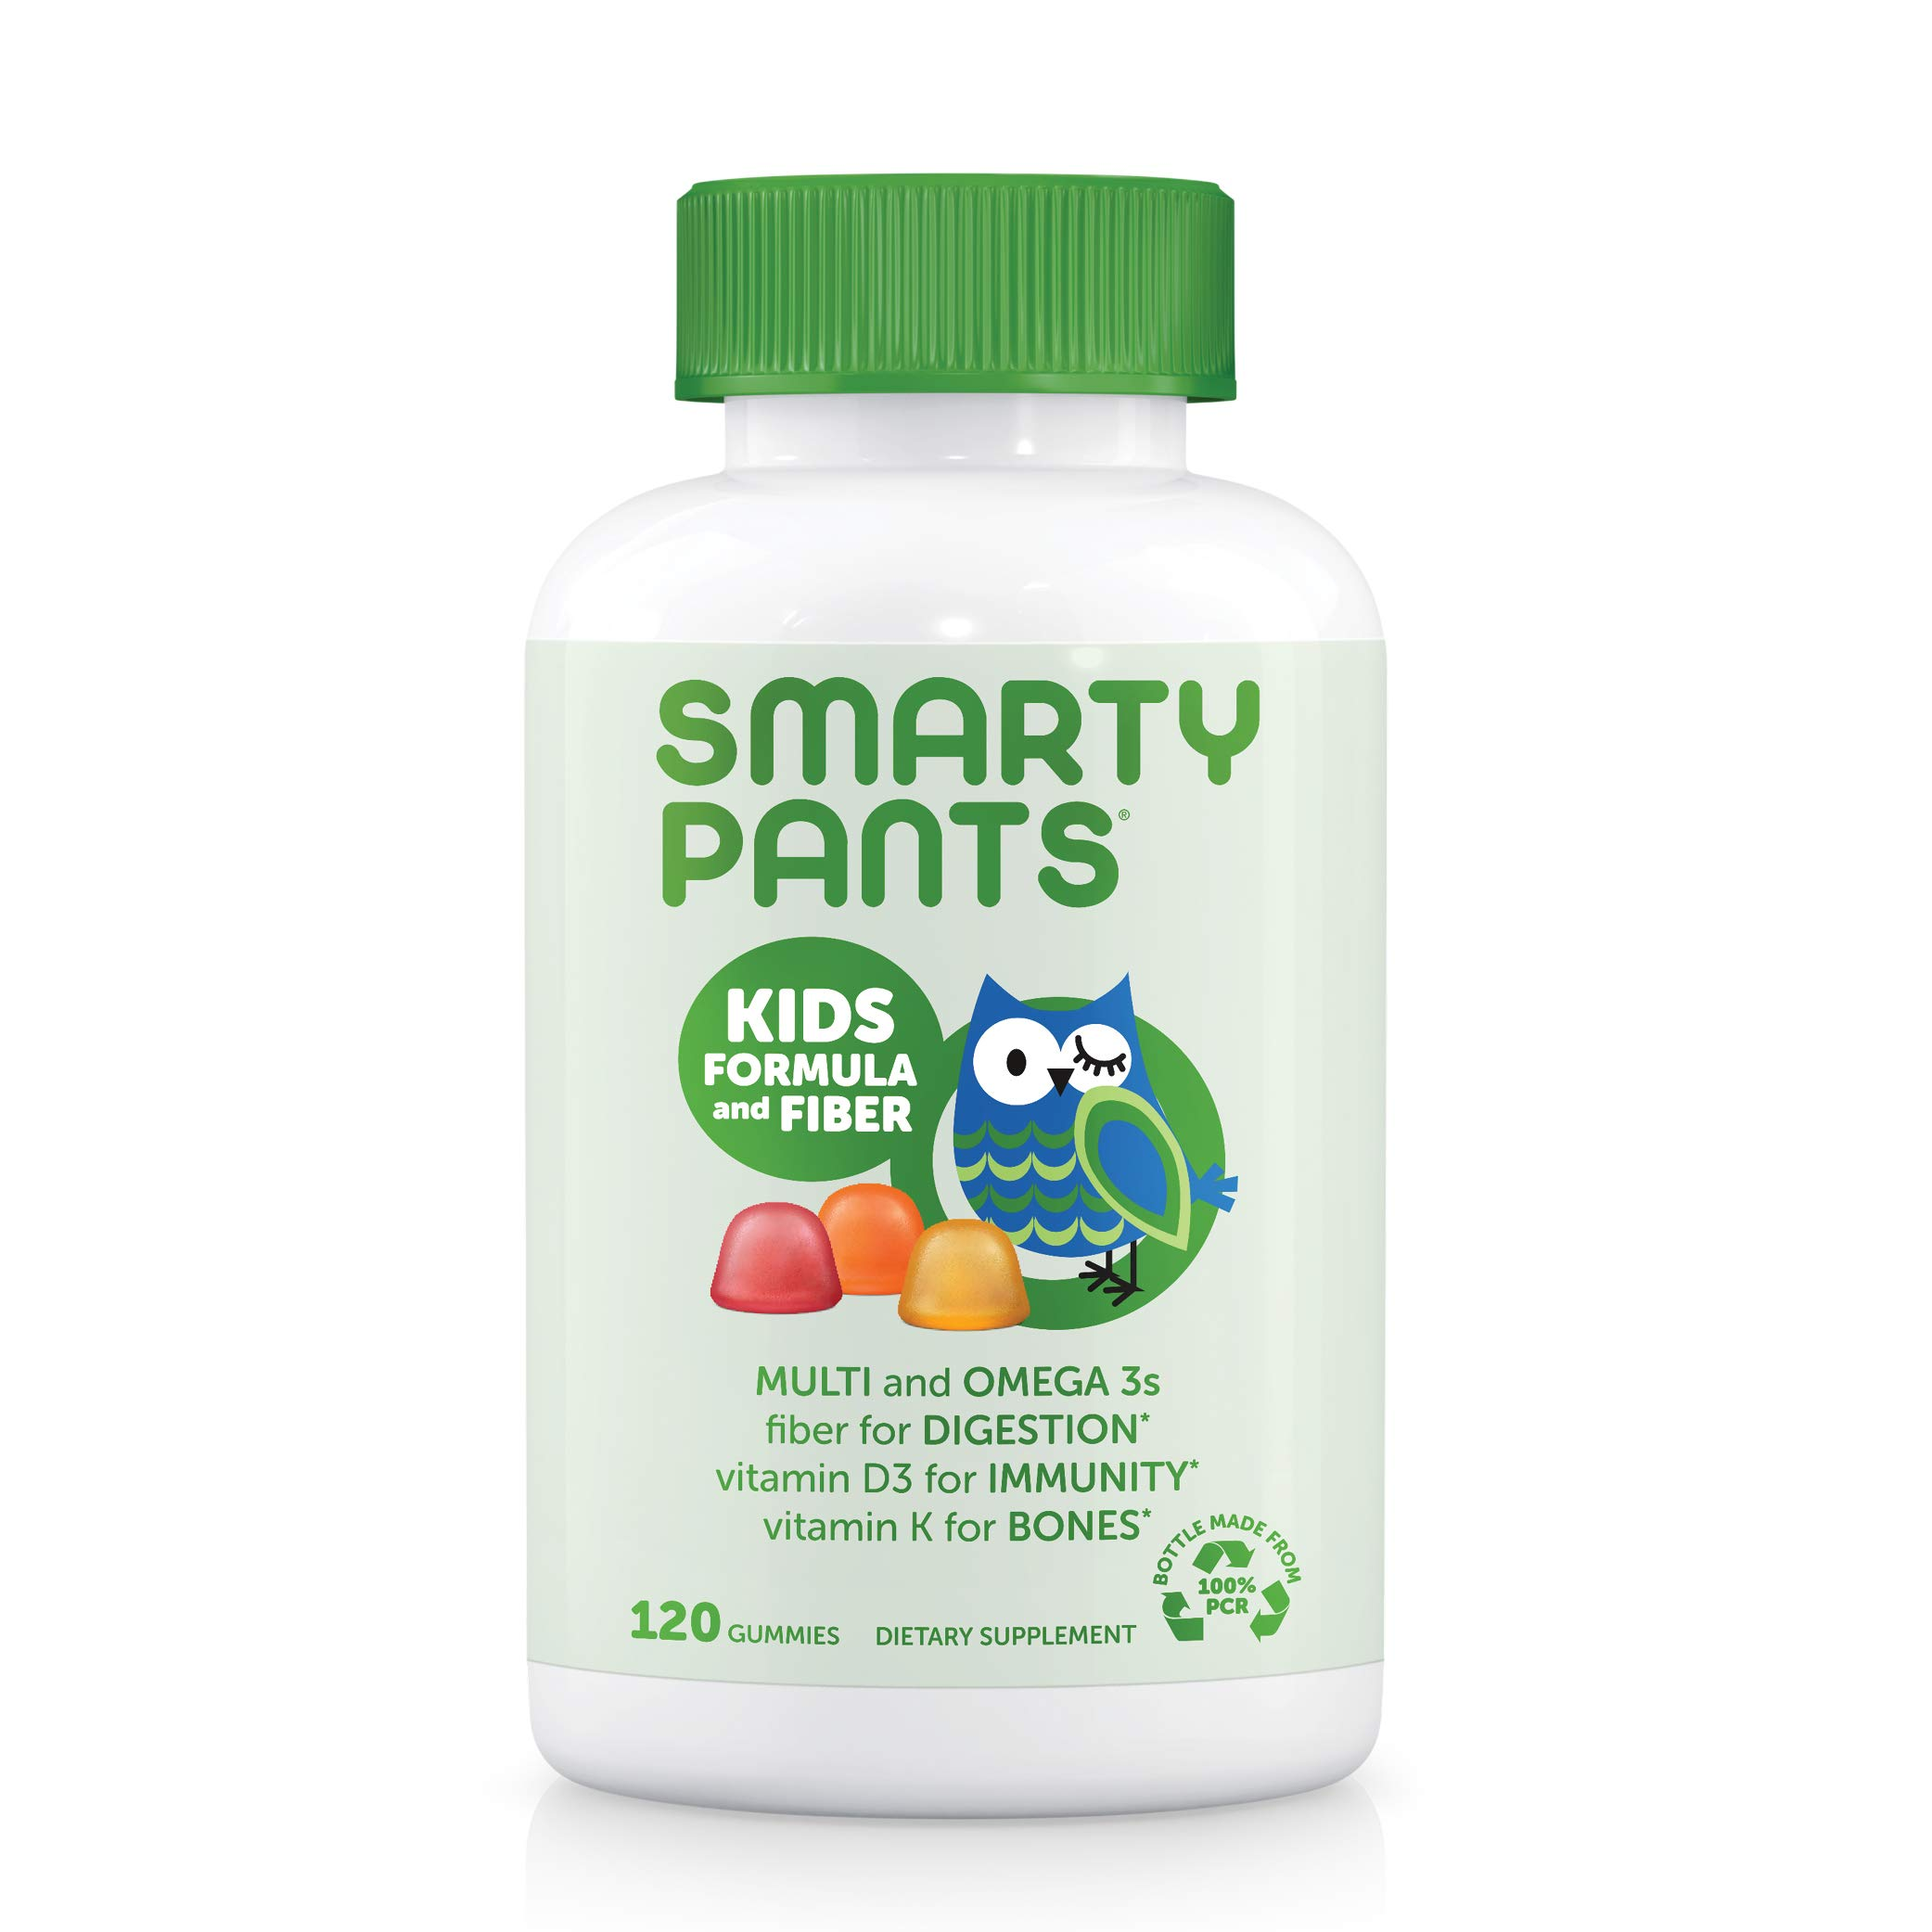 SmartyPants Kids Formula & Fiber Daily Gummy Multivitamin: Fiber for Digestive Health, Vitamin C, D3, & Zinc for Immunity, Omega 3 Fish Oil (EPA & DHA), B6, Methyl B12, 120 Count (30 Day Supply)